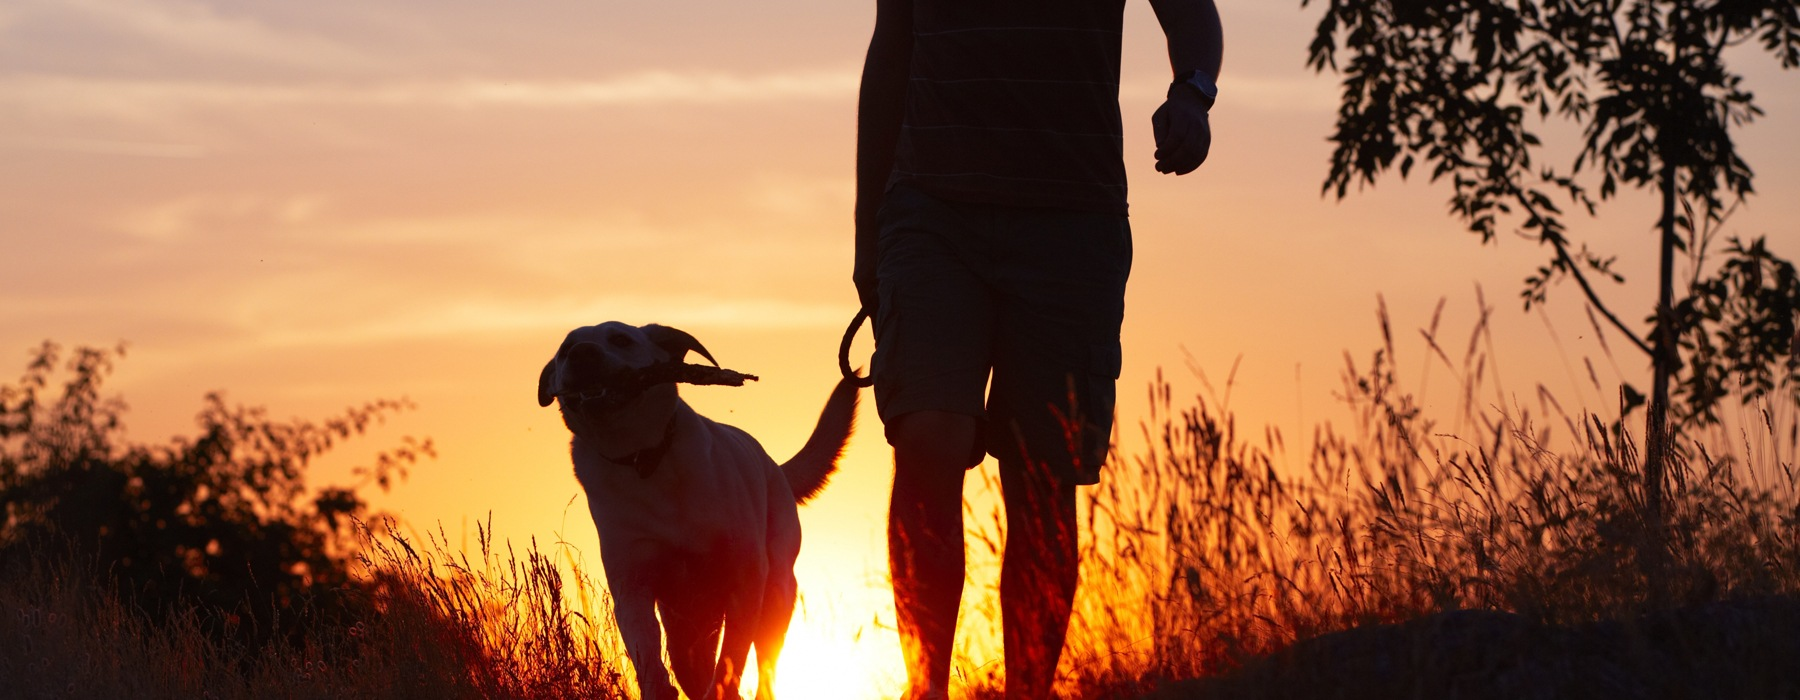 Sillouette of man and dog during sunset